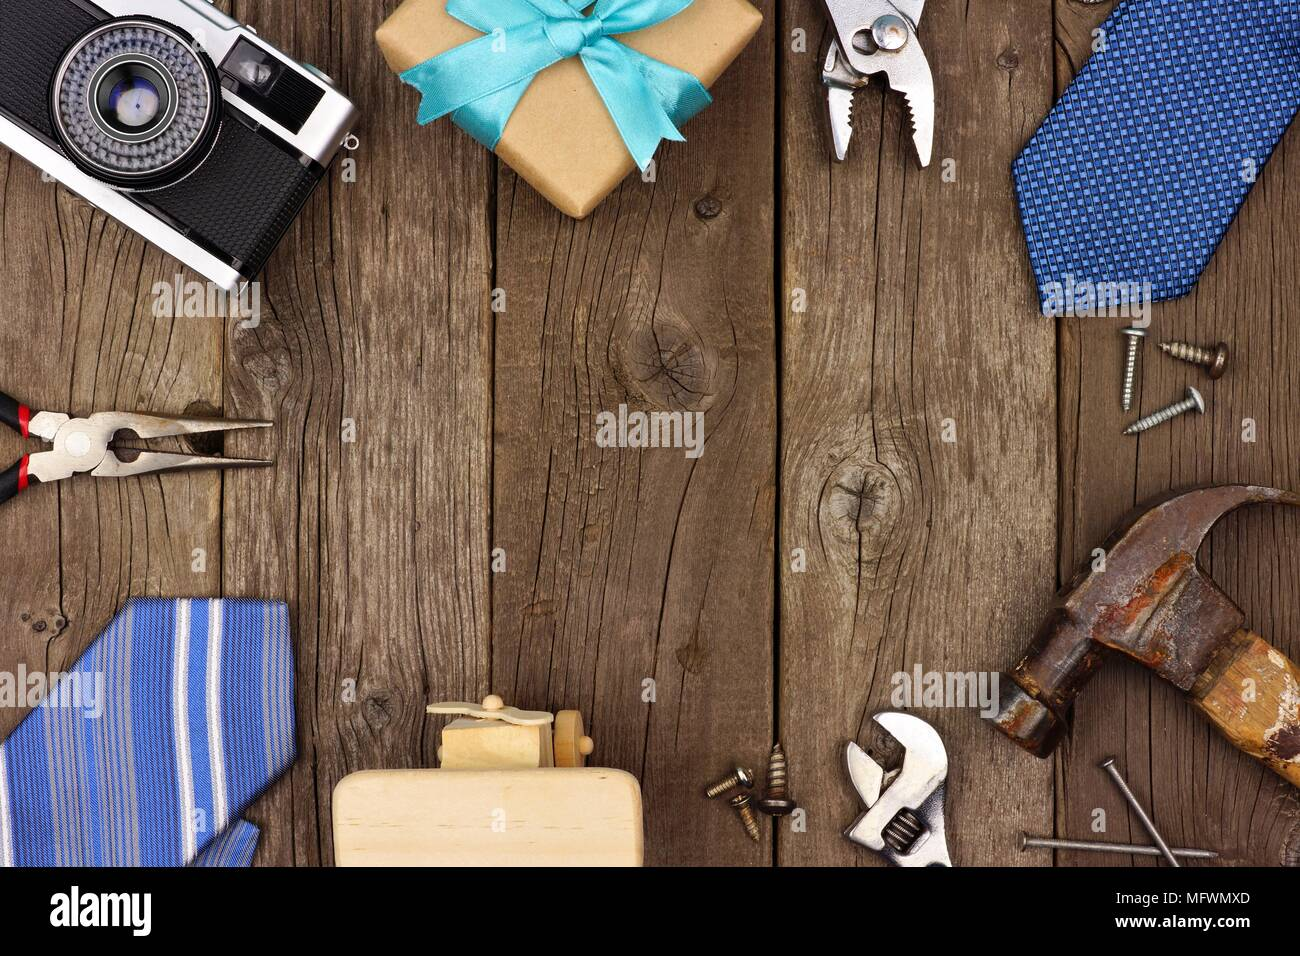 Fathers Day theme frame of gifts, ties and tools on a rustic wood background. Top view with copy space. Stock Photo